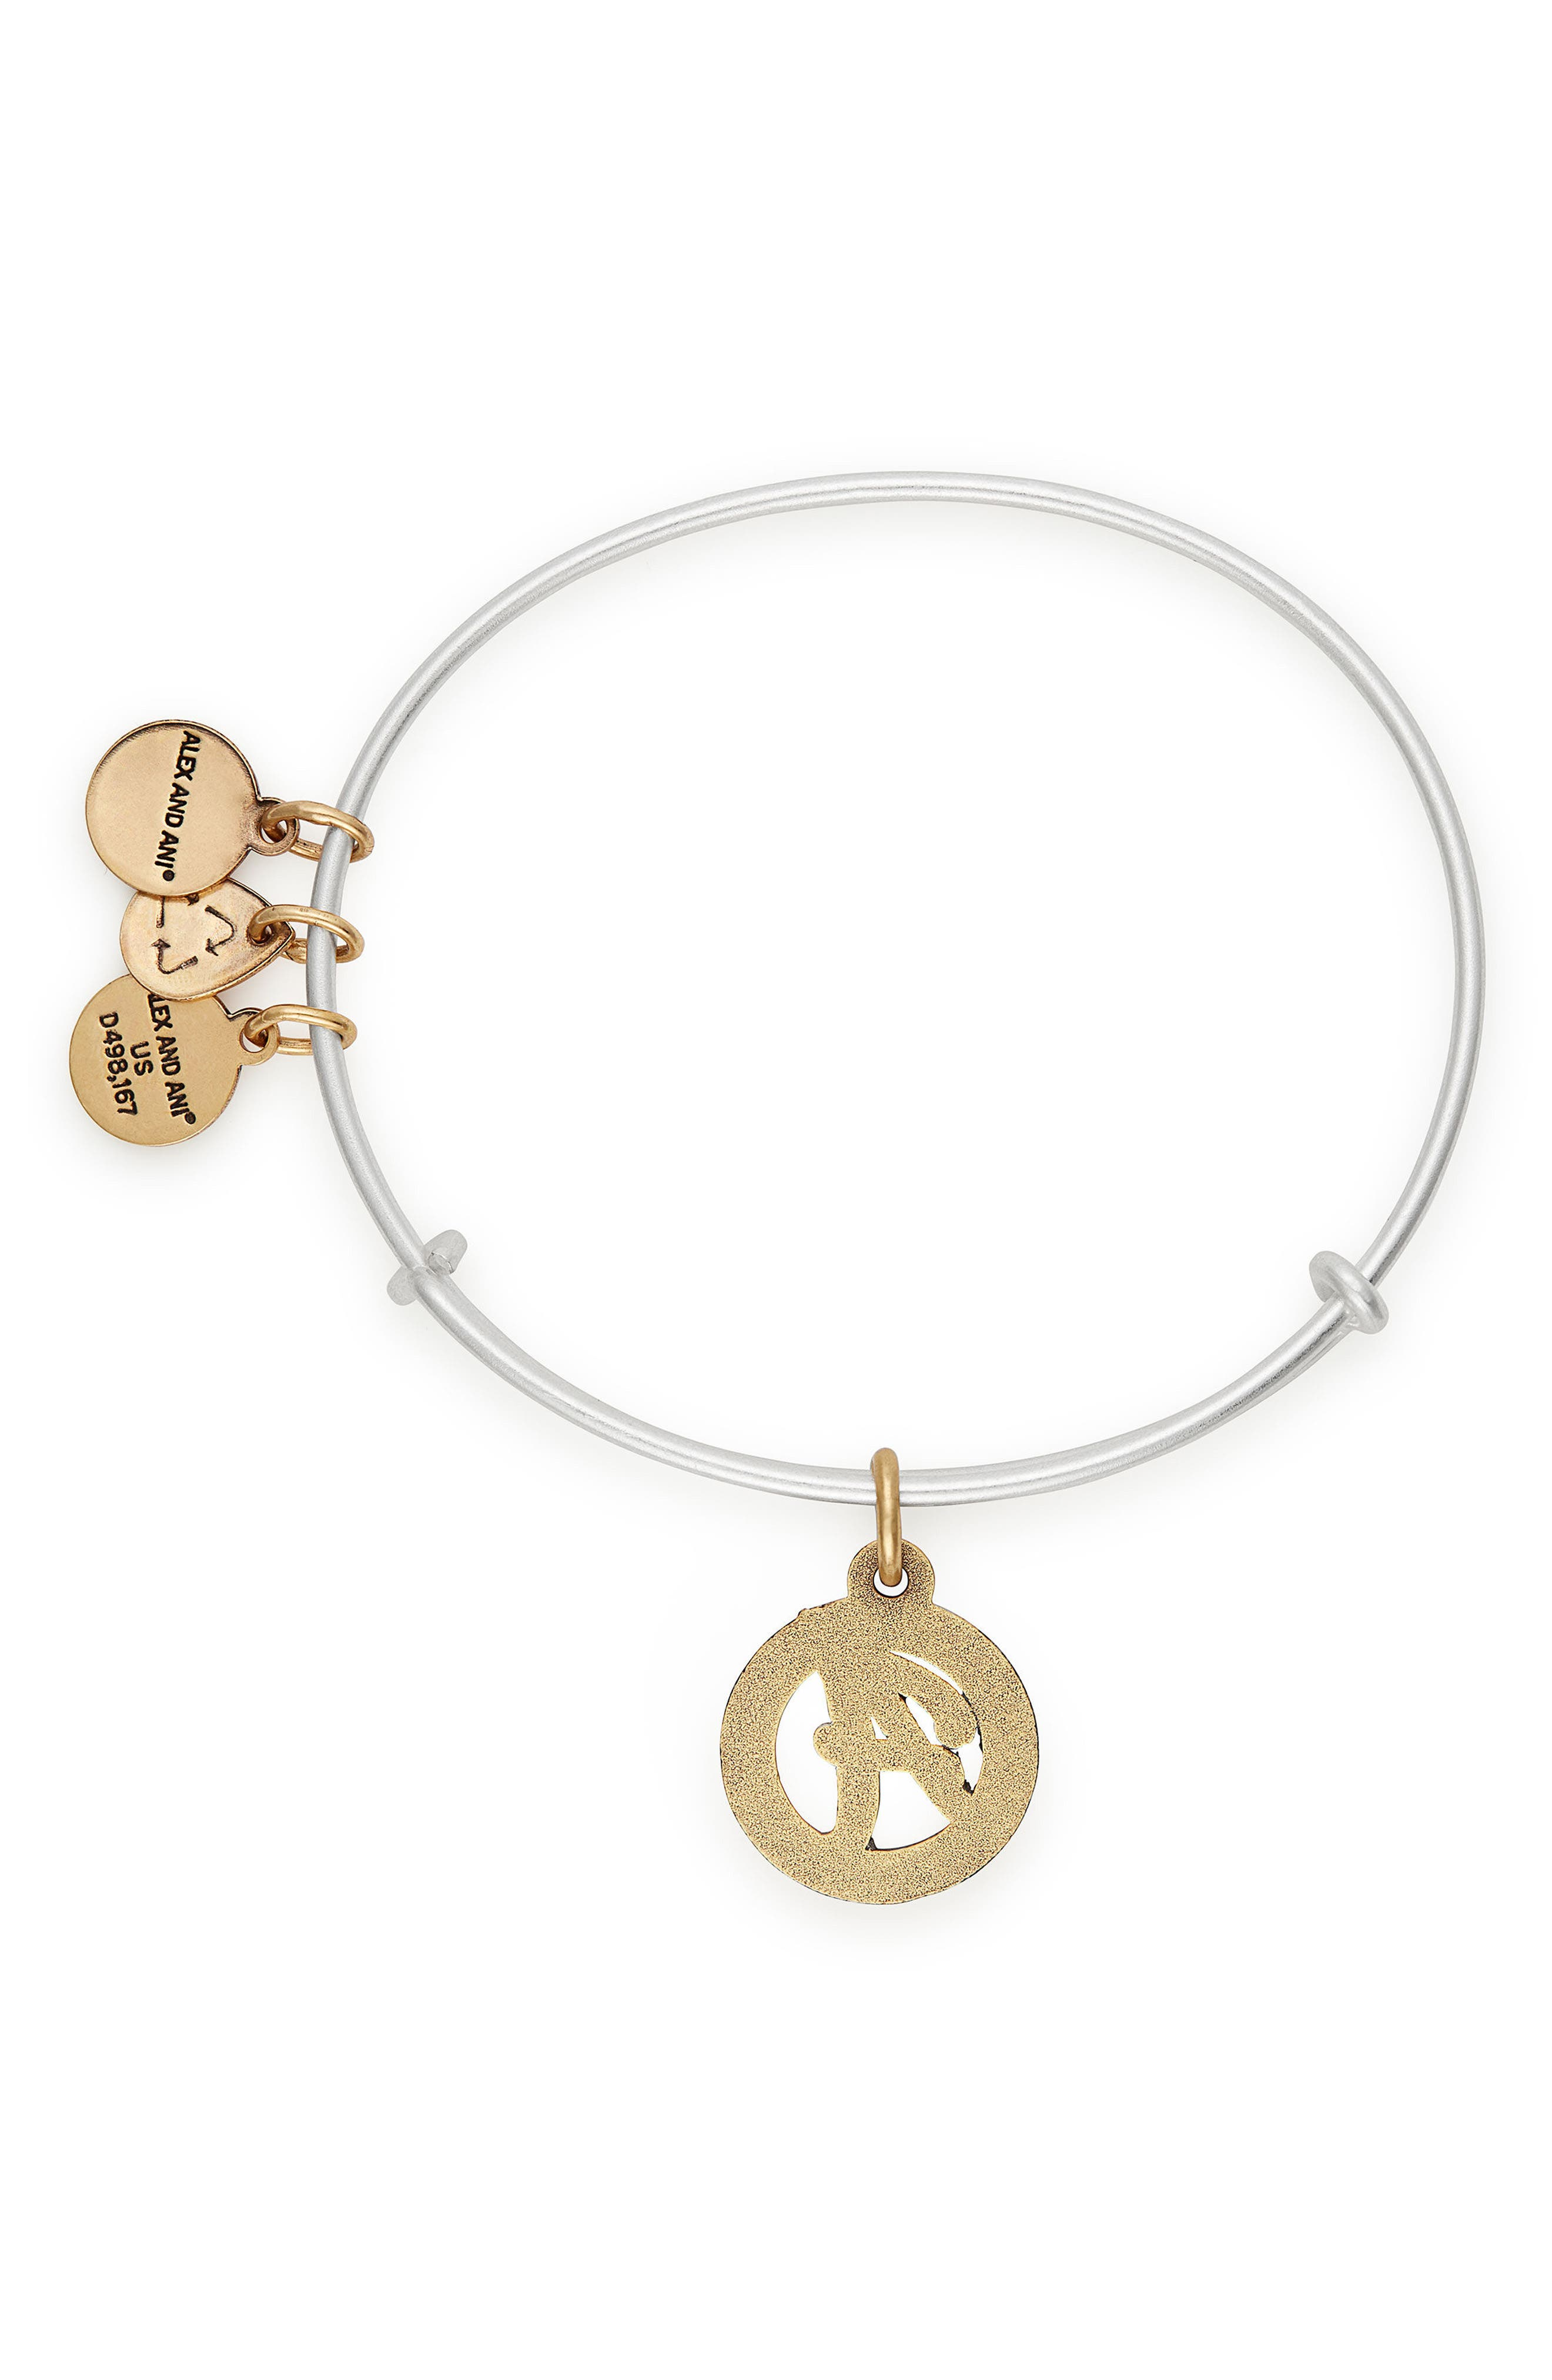 Two-Tone Initial Charm Expandable Bracelet,                             Alternate thumbnail 2, color,                             TWO-TONE-A